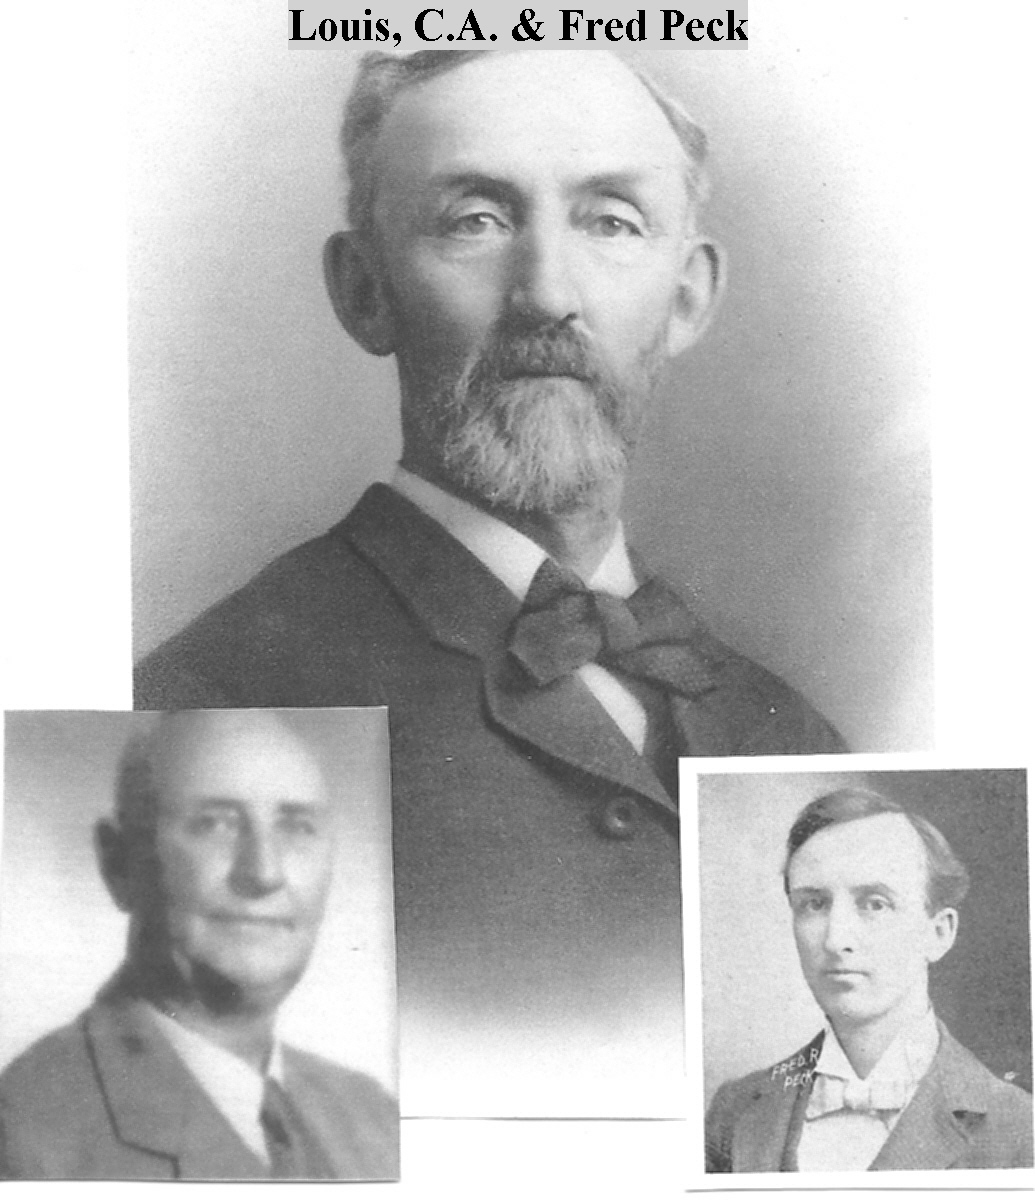 Covell A., Frederick R., & Louis C. Peck